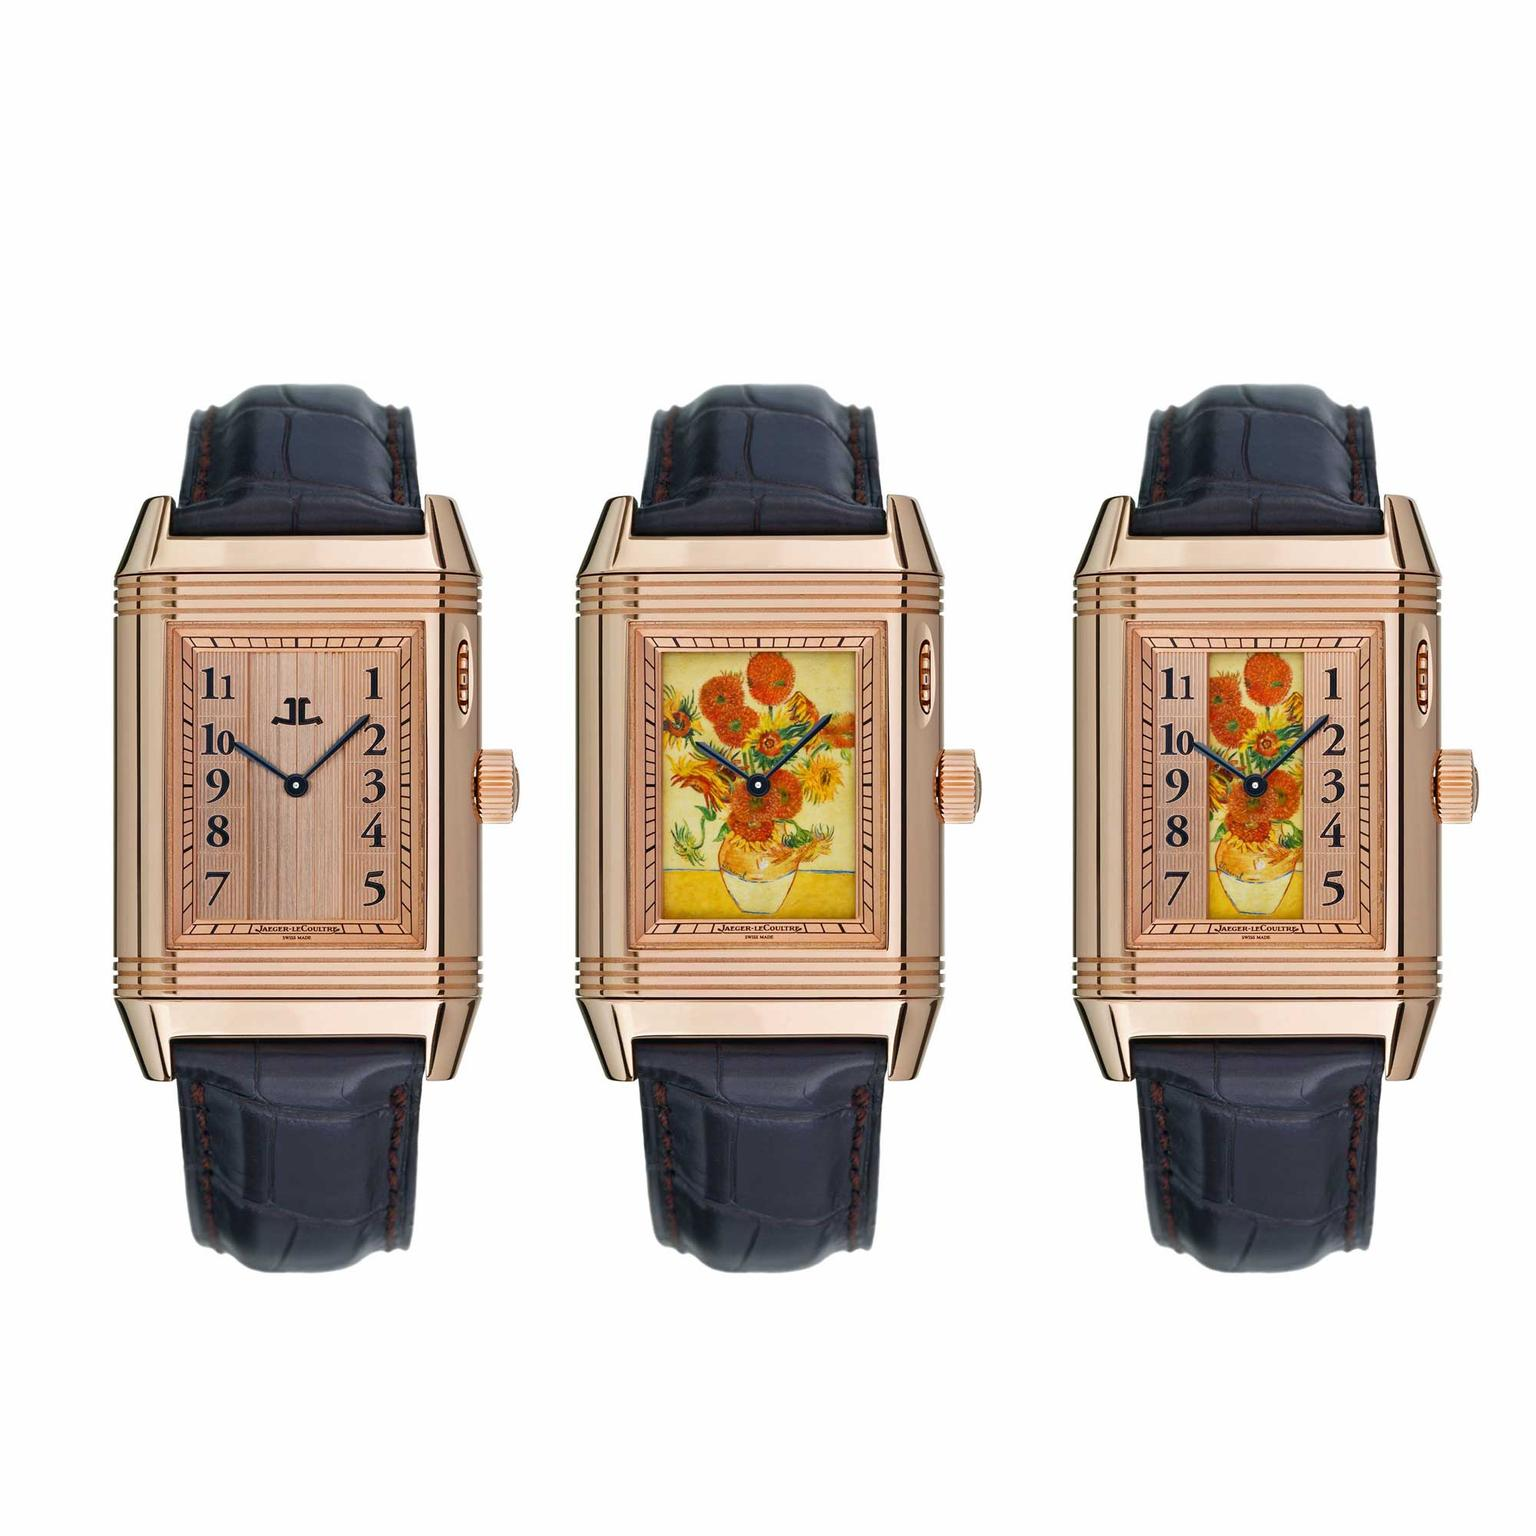 Jaeger-LeCoultre Reverso à Eclipse Sunflowers watches